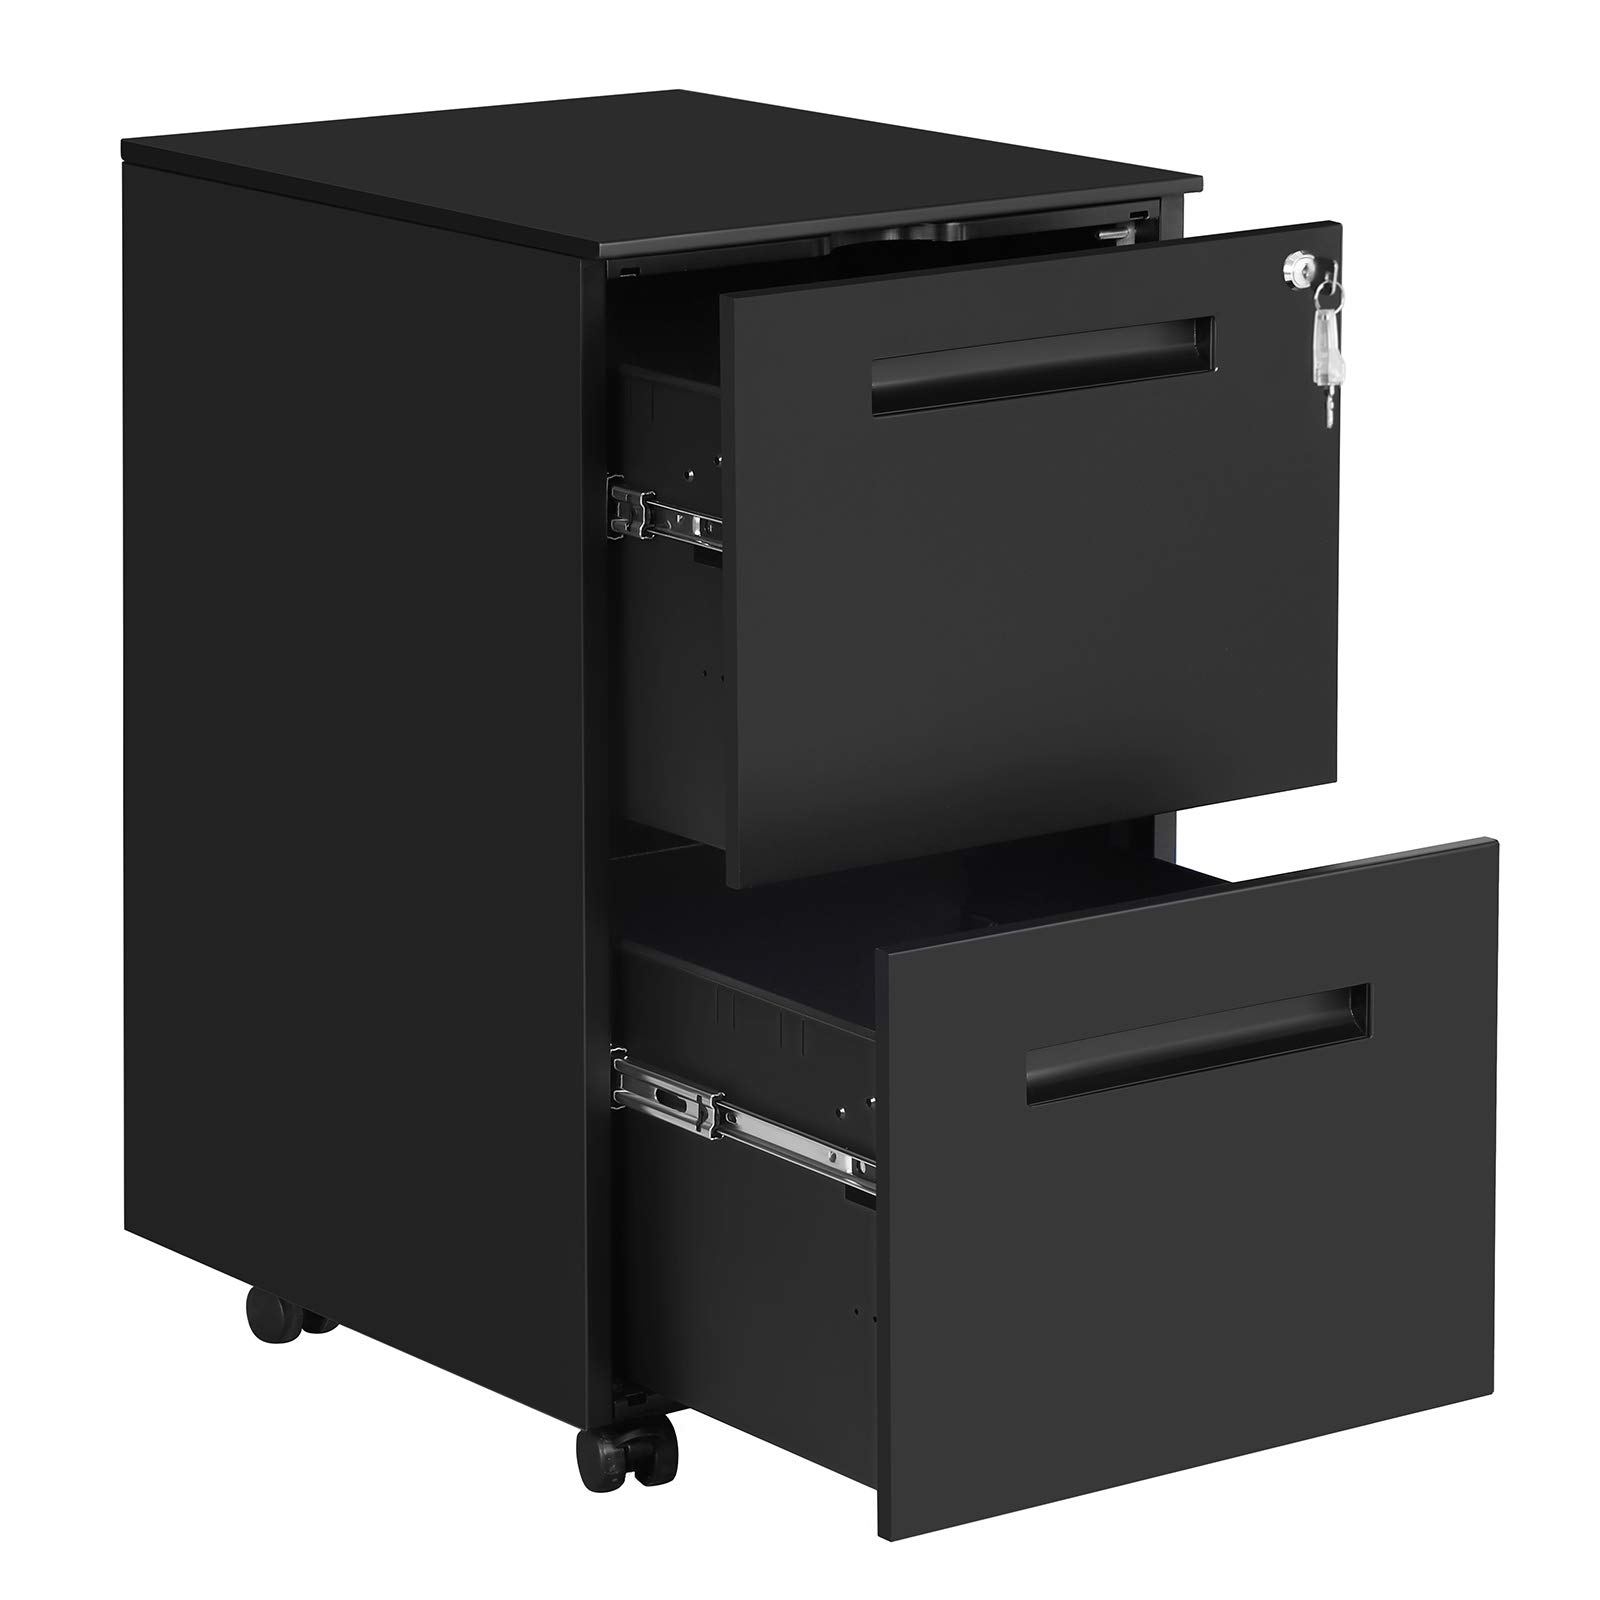 SONGMICS Mobile File Cabinet, with 2 Drawers, Lock, Suspended Folders, Pre-Assembled, 15.4 x 19.7 x 27.4 Inches, Matte Black UOFC52BK by SONGMICS